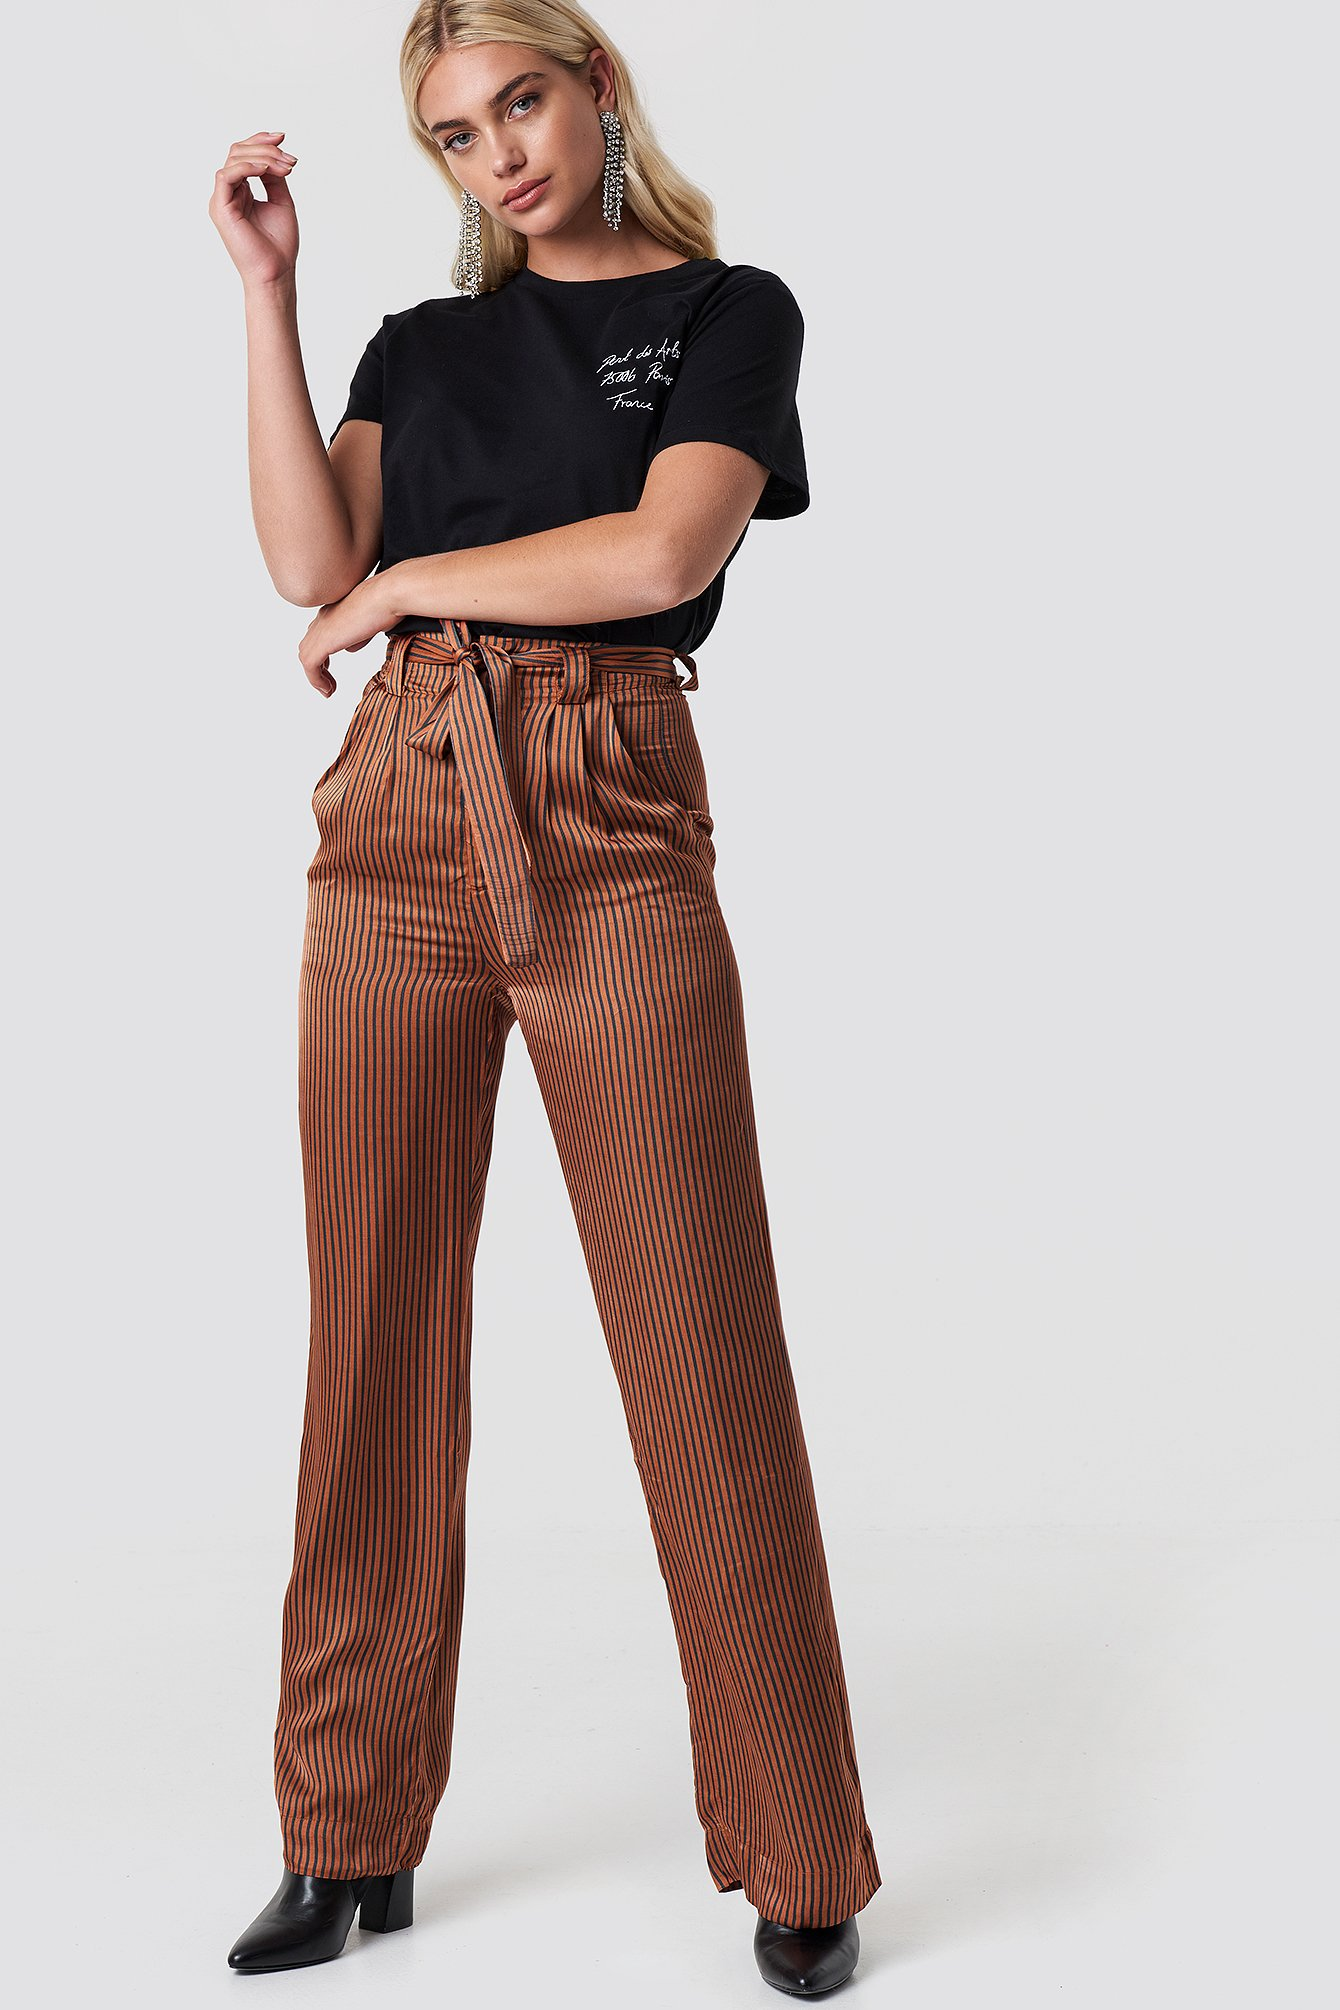 gestuz -  Veronica Pants - Orange,Copper